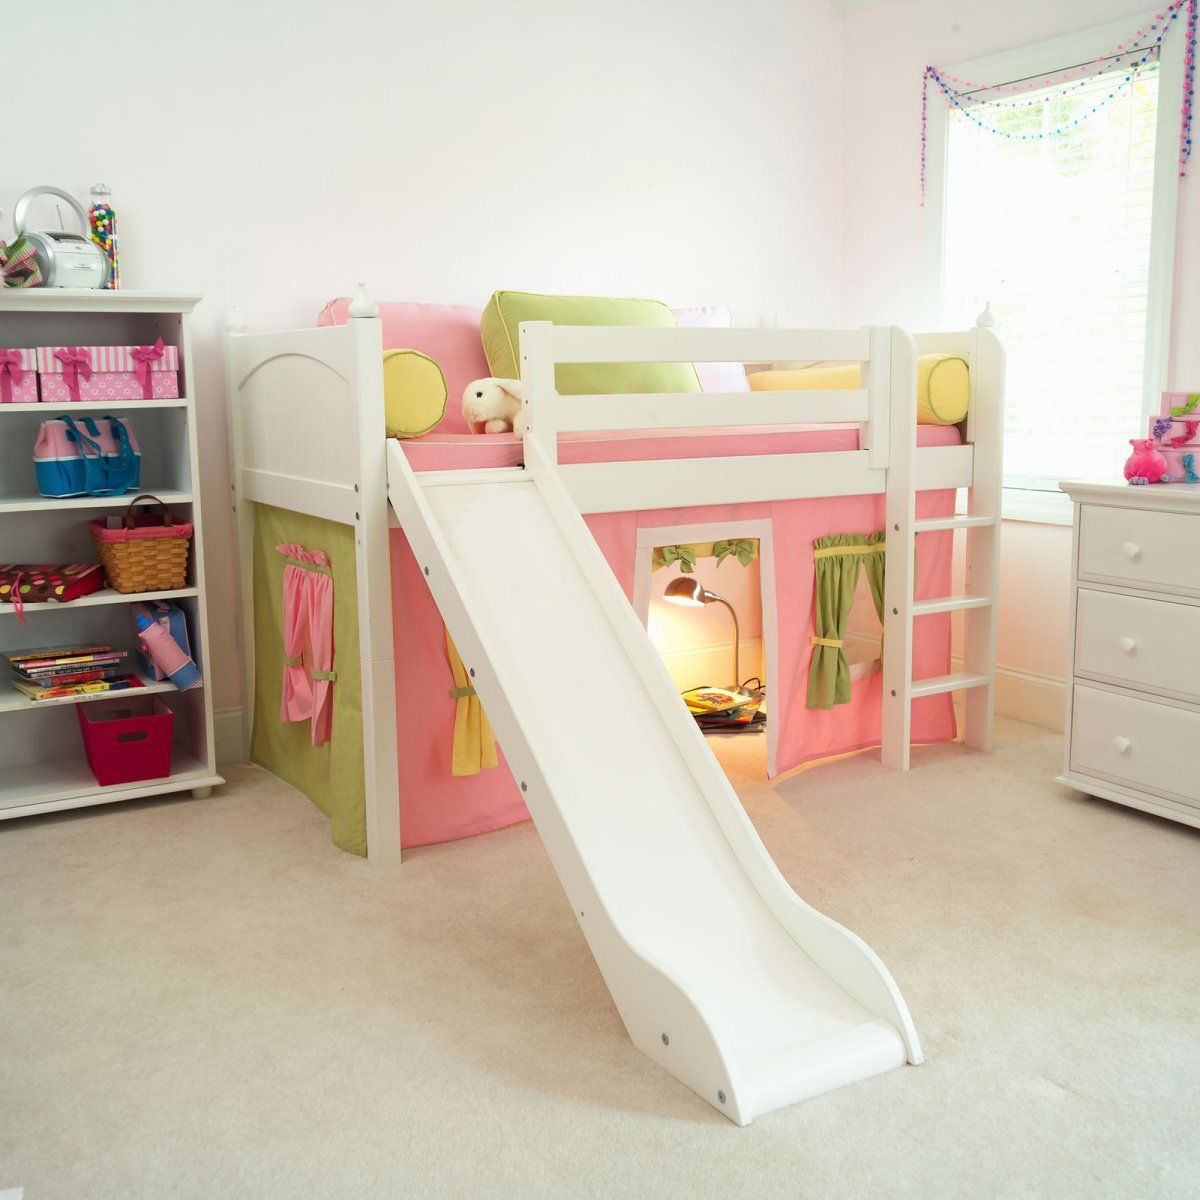 Marvelous Girl Tent Low Loft With Slide Kids Loft Beds Bed With